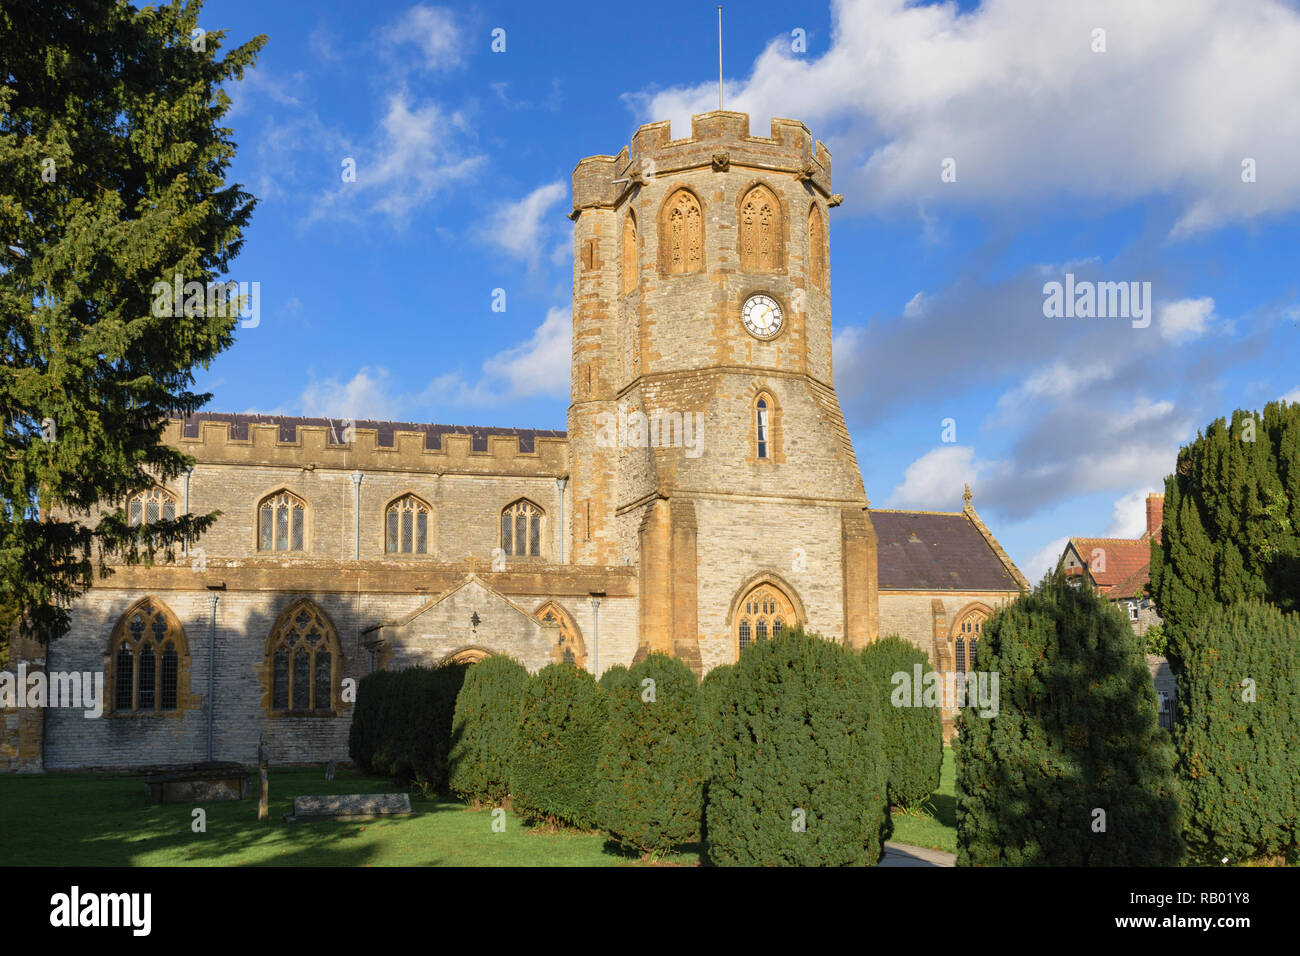 St Michaels and All Angels parish church  in the small Somerset town  of Somerton  England UK - Stock Image